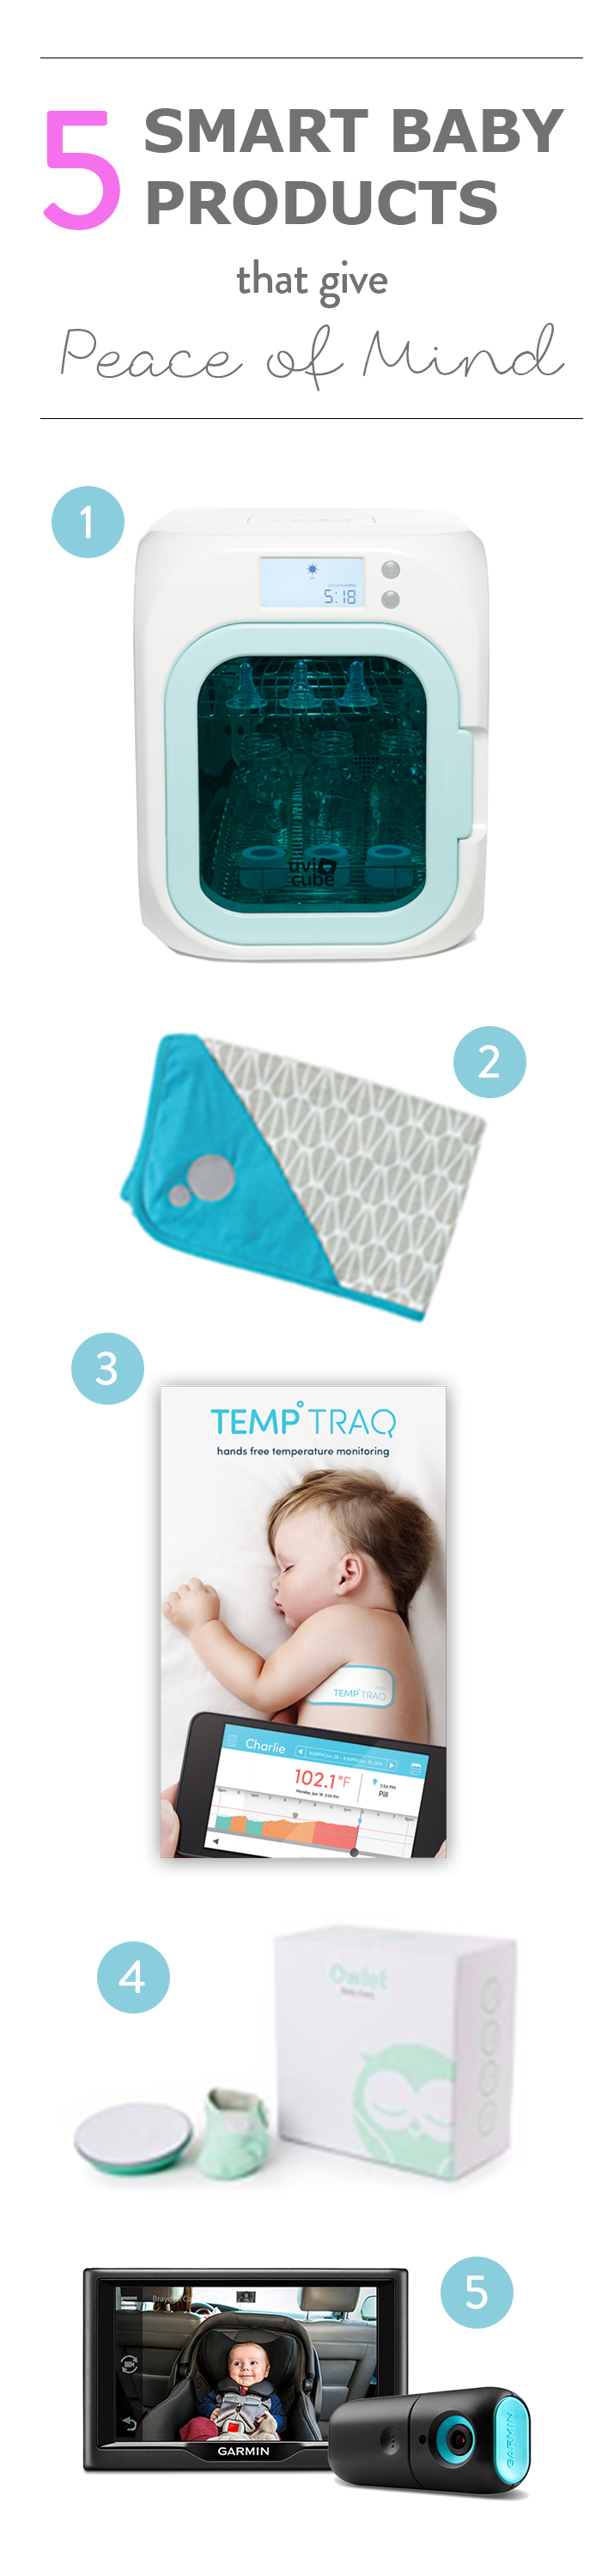 Smart baby products that give parents peace of mind.